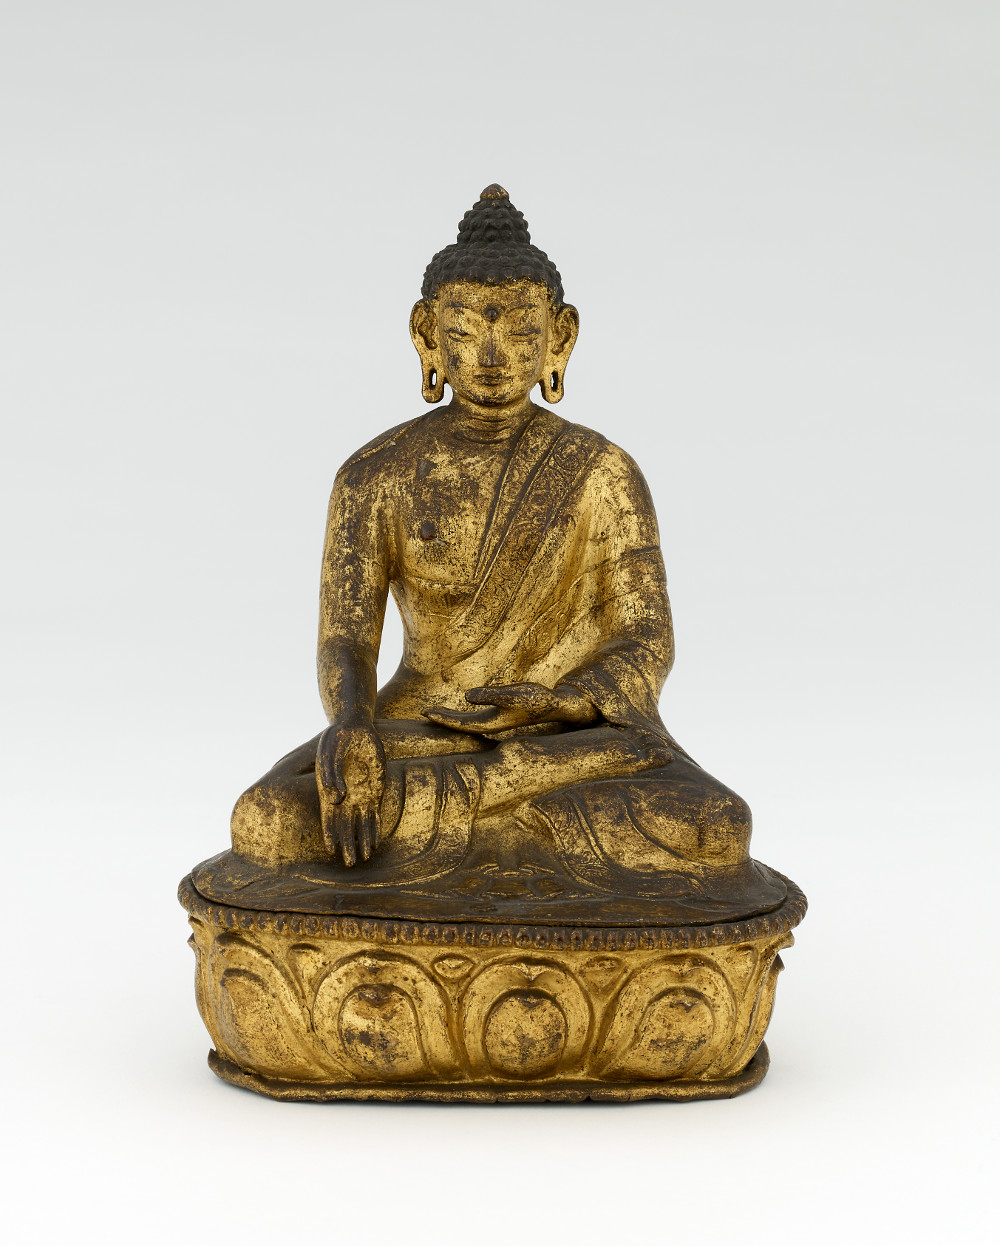 Buddha - Copper alloyAD 1500–1700TibetBritish Museum